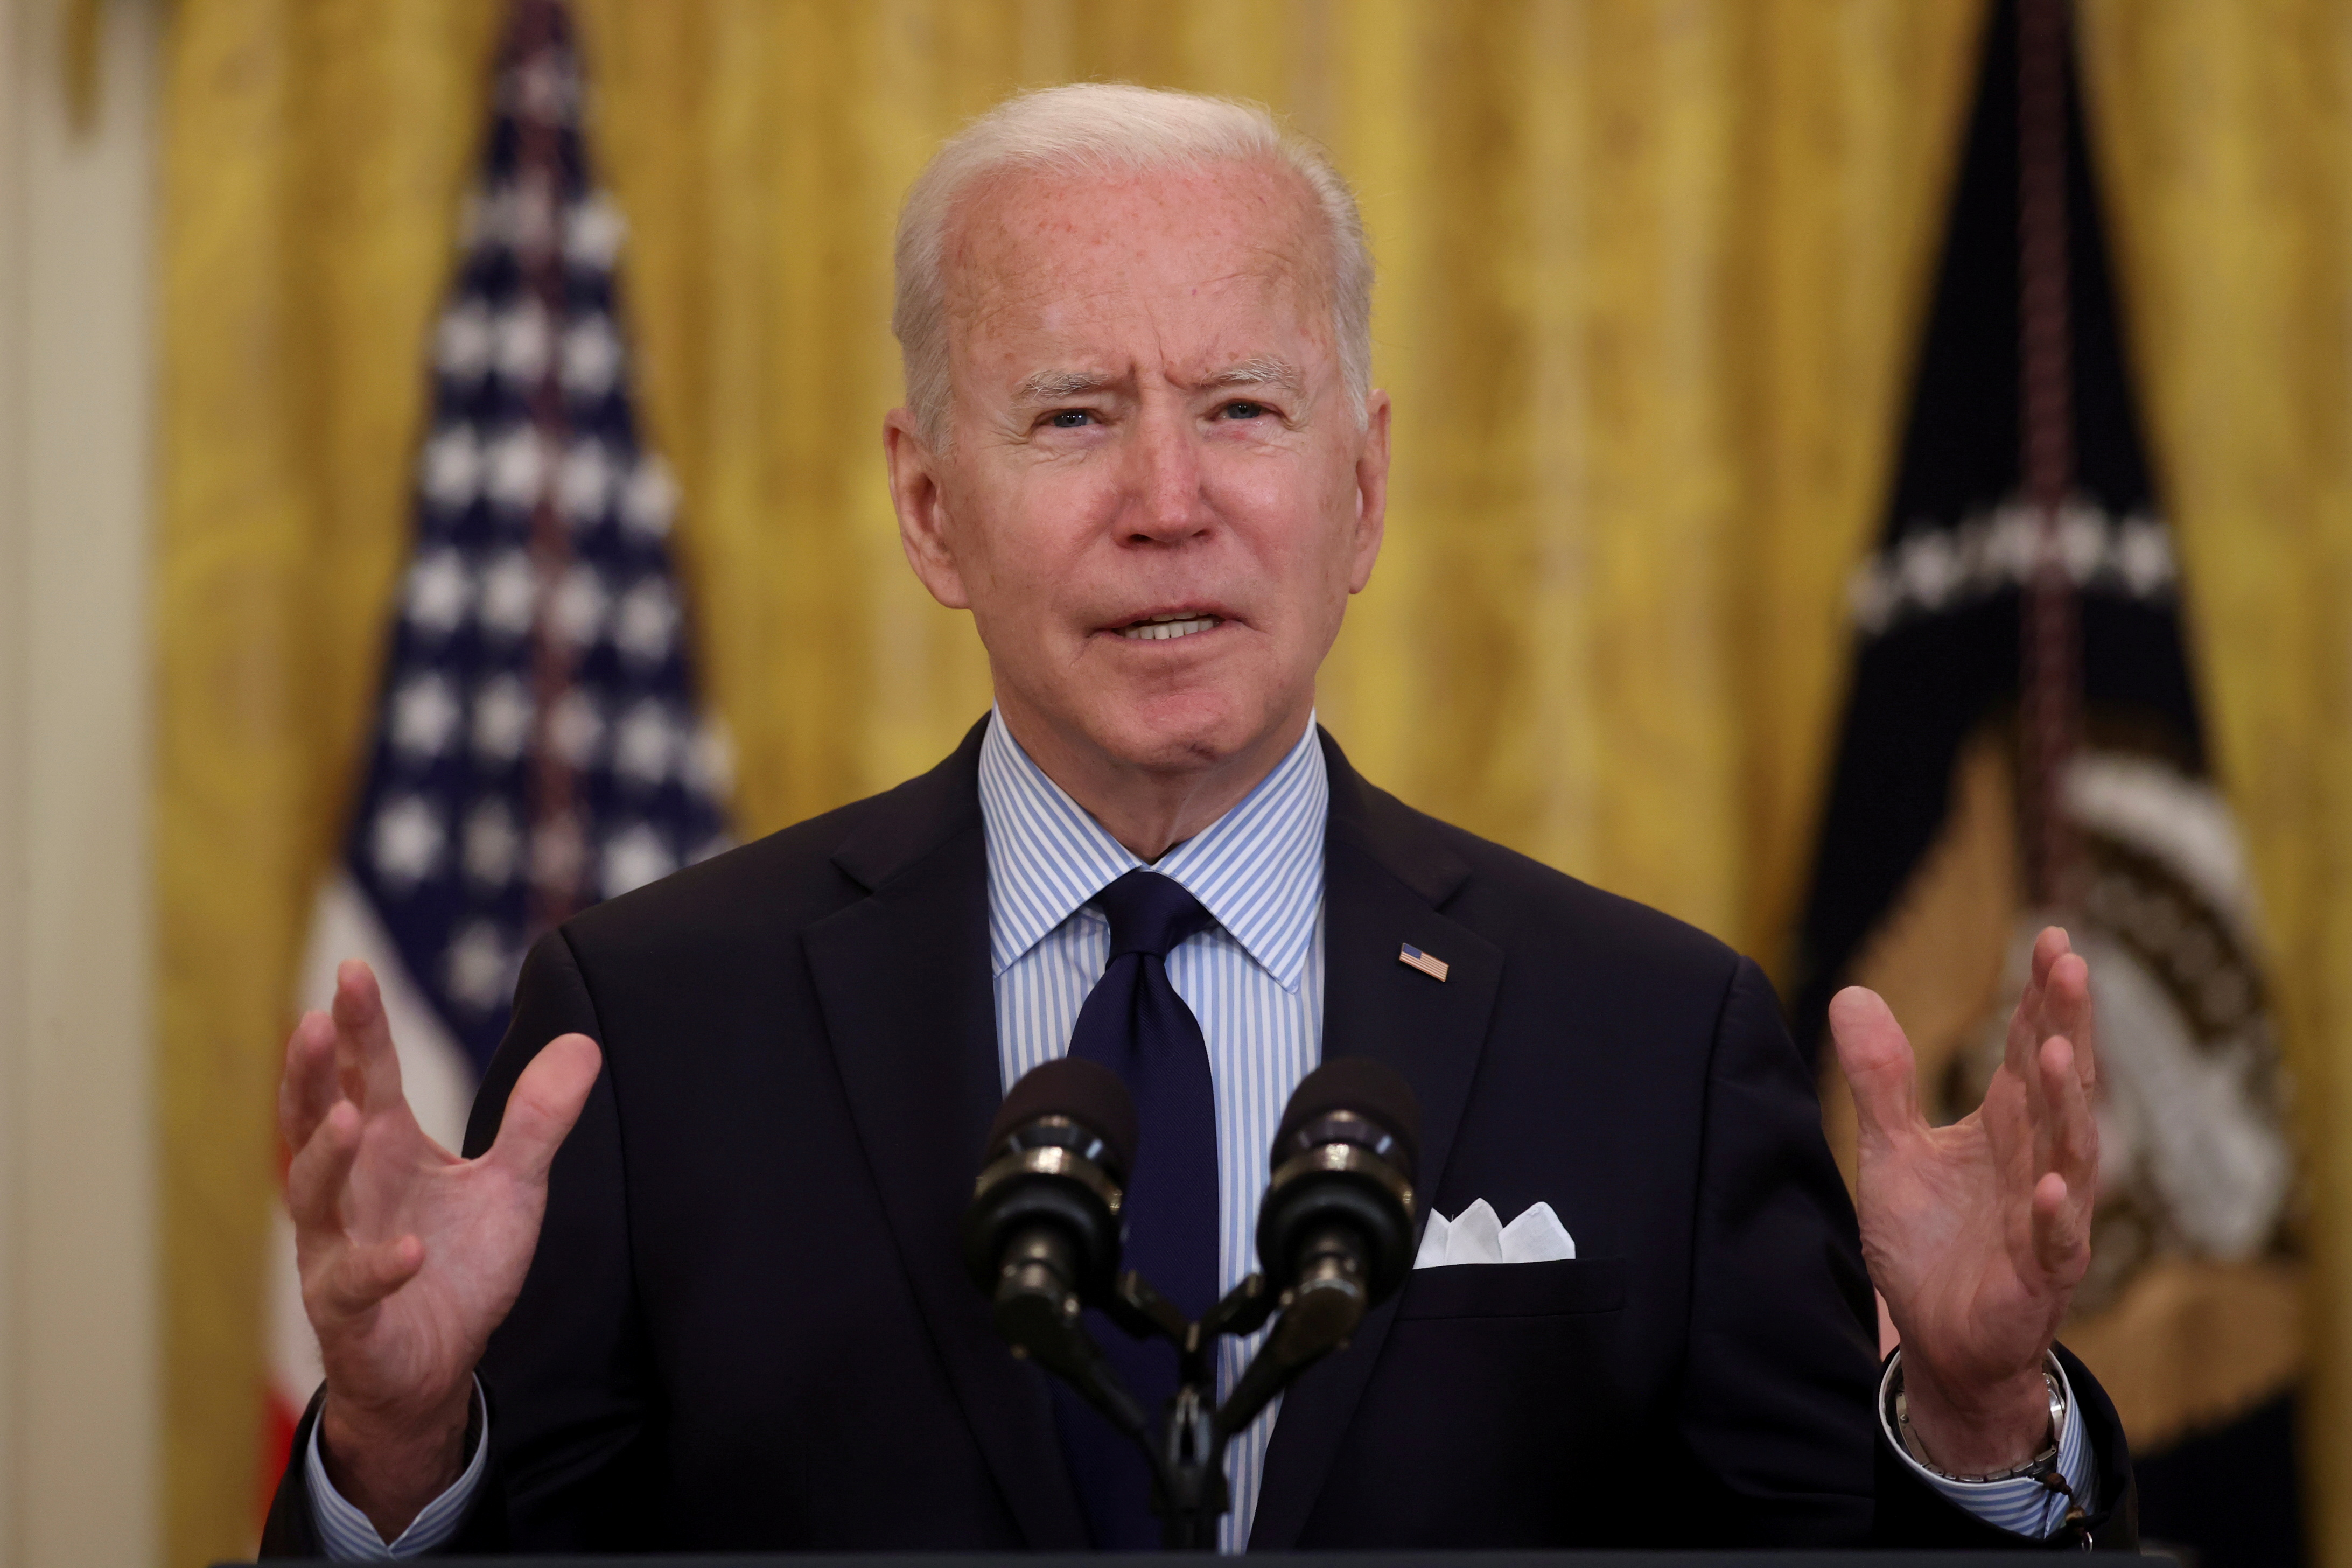 U.S. President Joe Biden delivers remarks on the April jobs report from the East Room of the White House in Washington, U.S., May 7, 2021.  REUTERS/Jonathan Ernst/File Photo